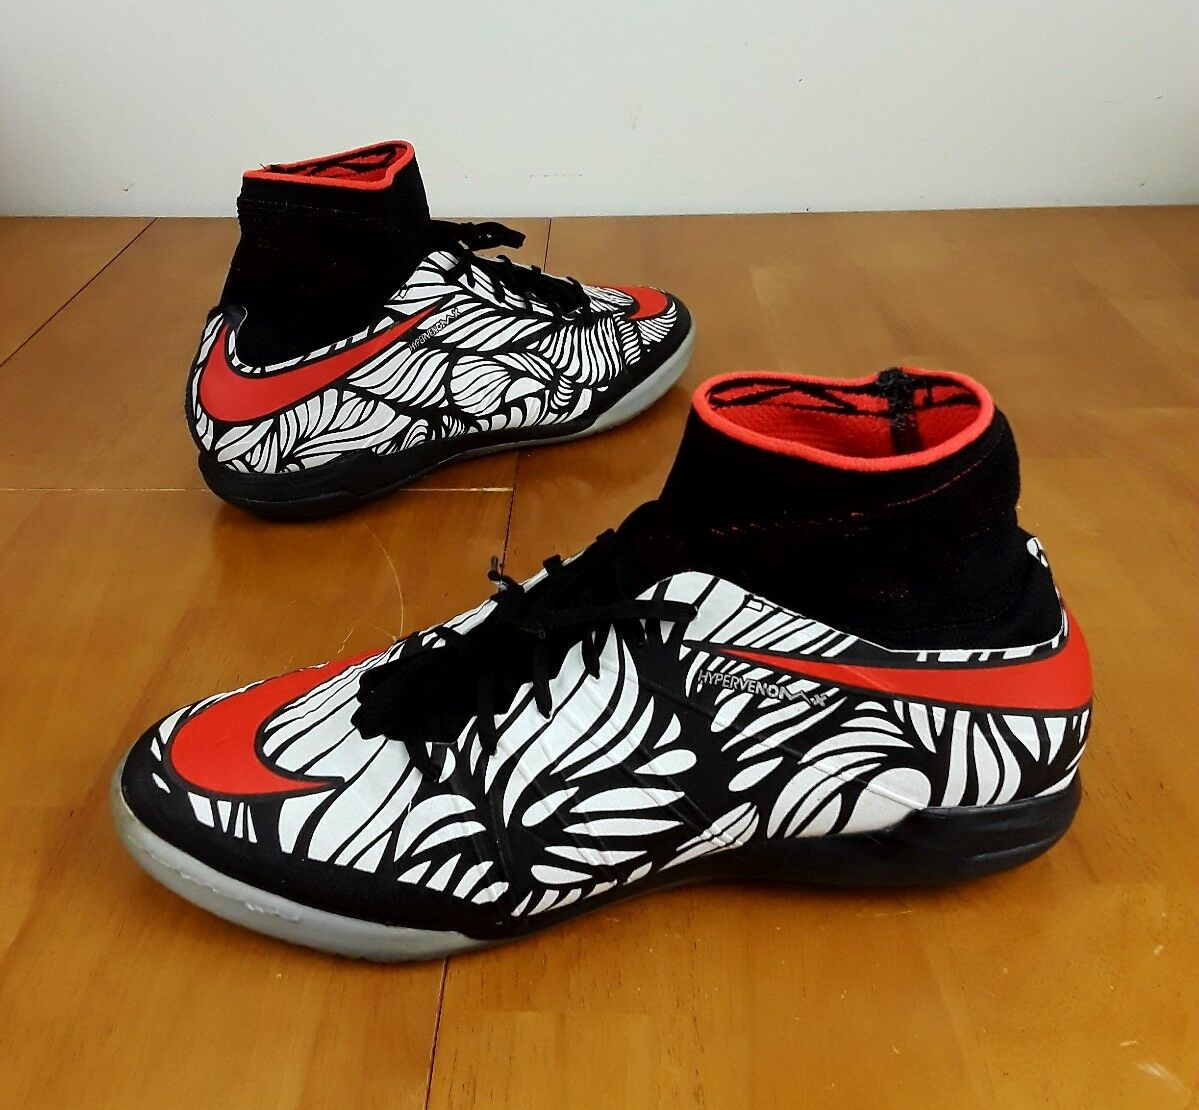 best authentic 18465 0d867 New Nike Nike Nike Men s Hypervenomx Proximo TF Athletic Shoes Black White  Red 820118